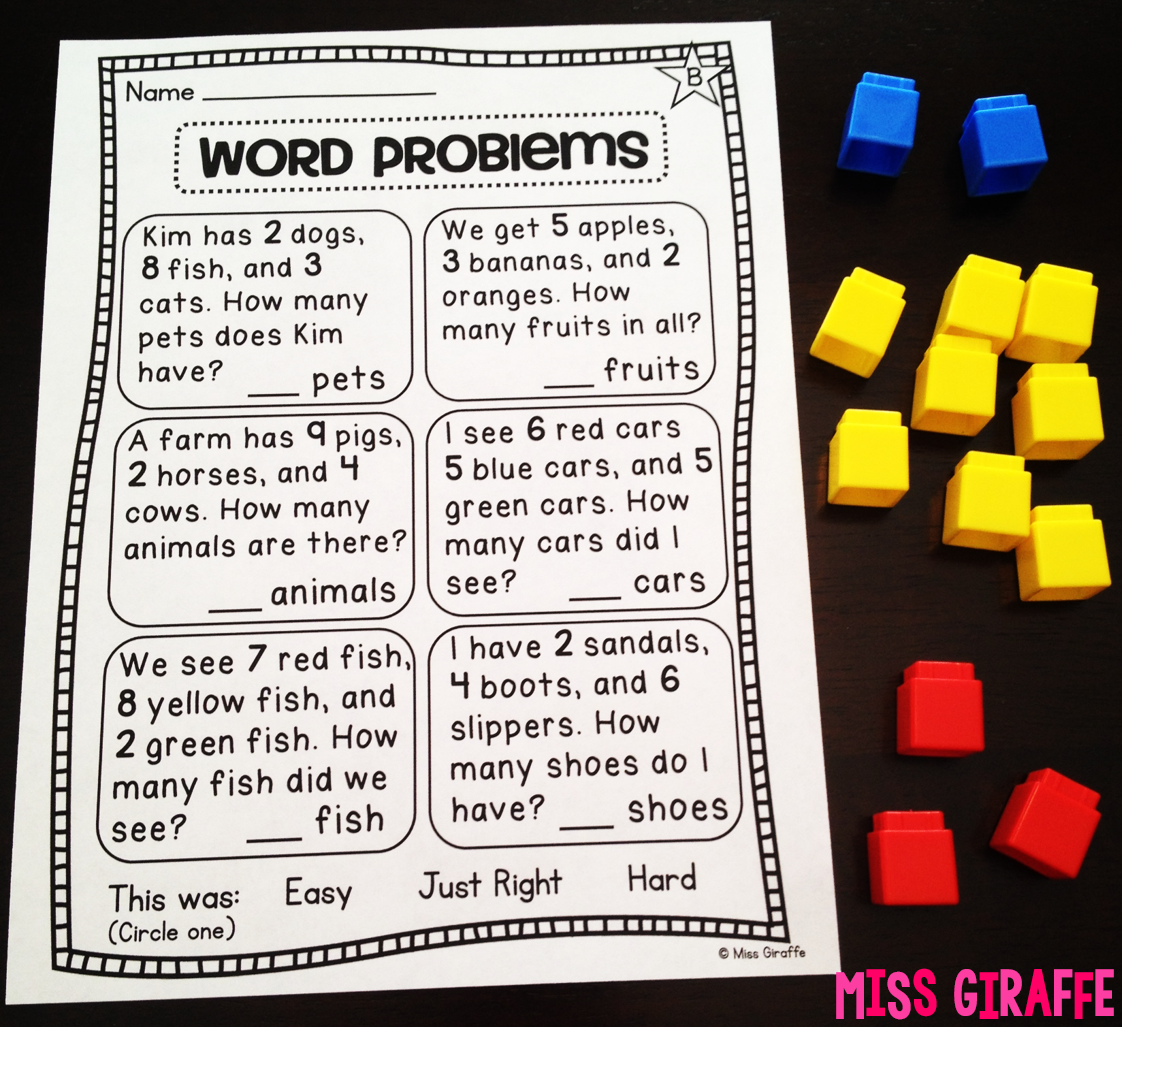 Worksheet Addition Word Problems For First Grade adding 3 numbers word problems that first grade kids can actually read differentiated levels